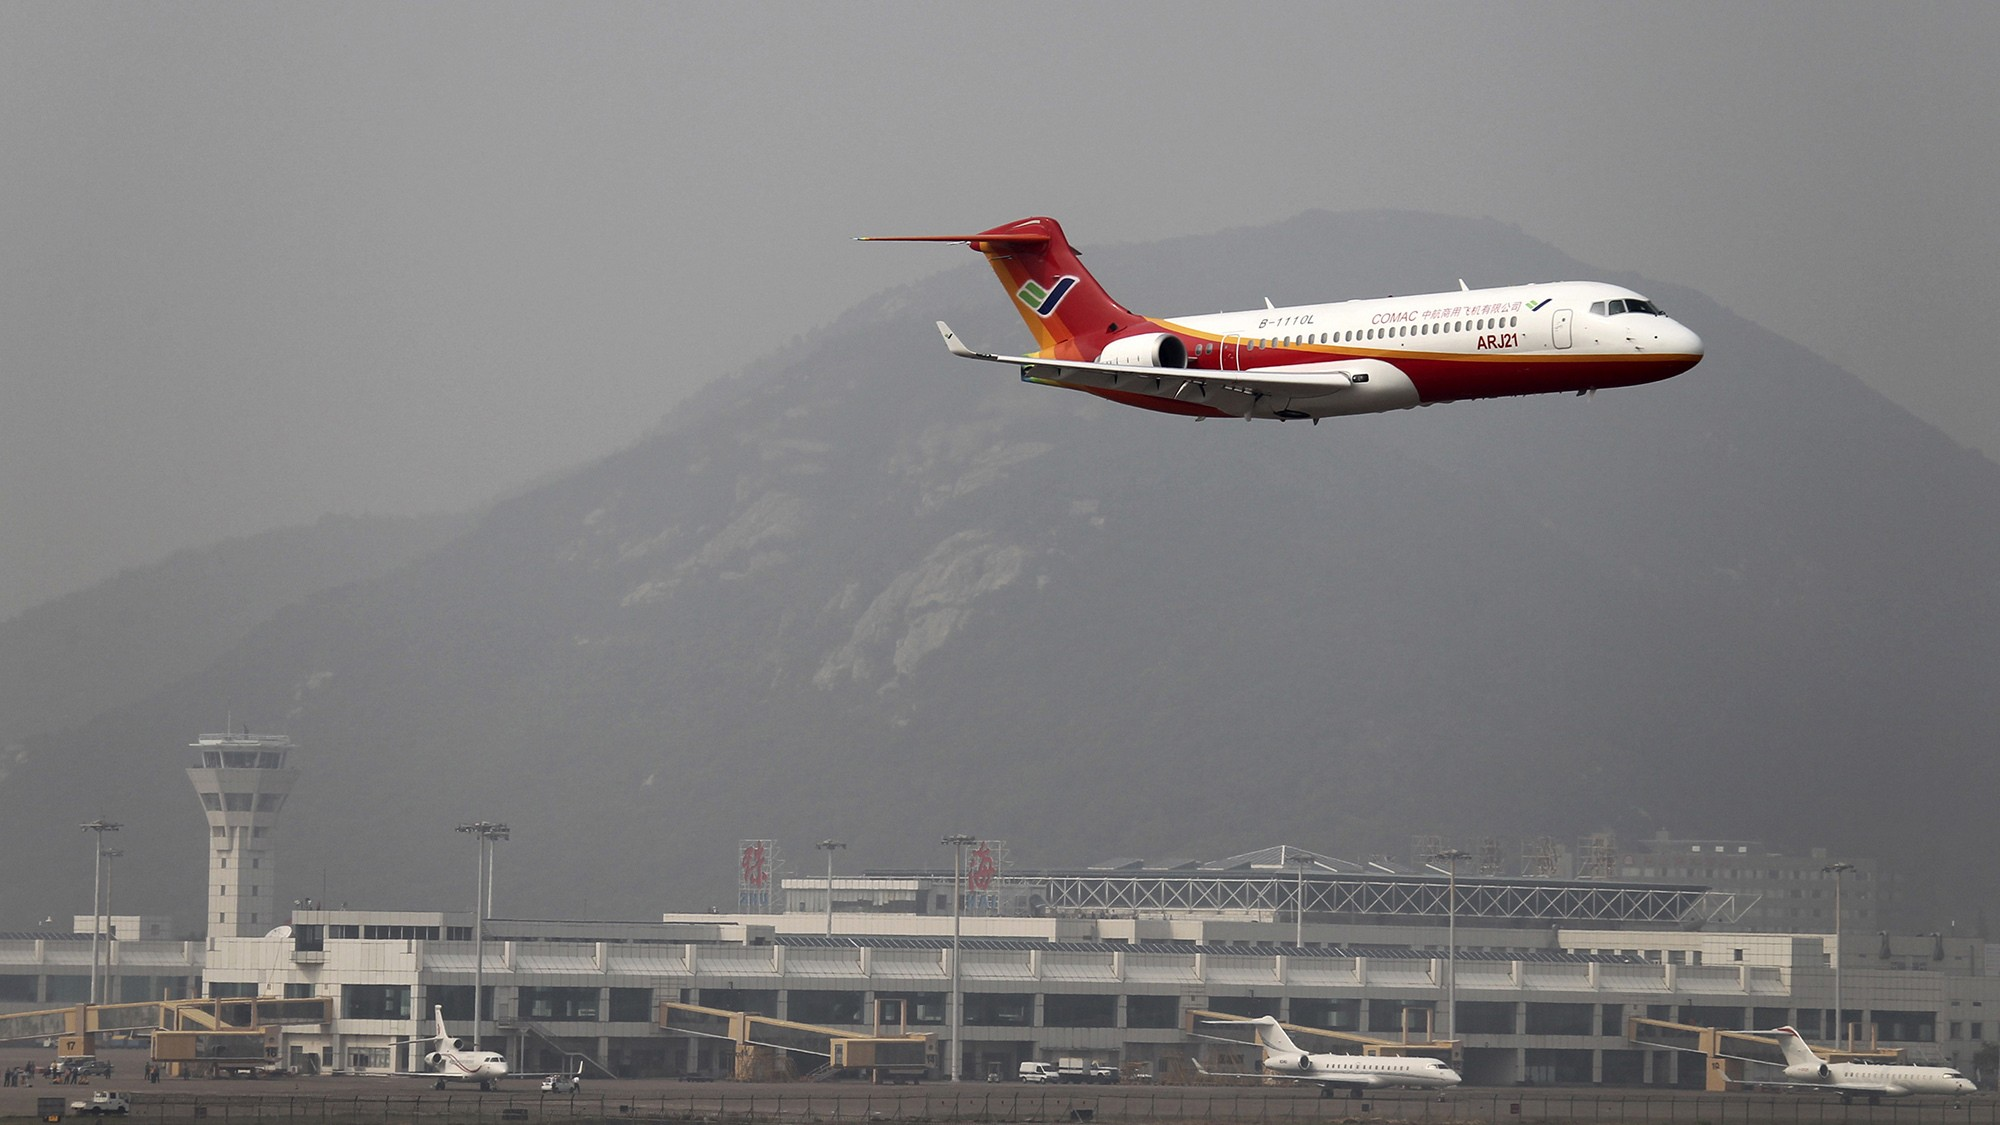 China just flew its first passenger jet — and it's a clunker